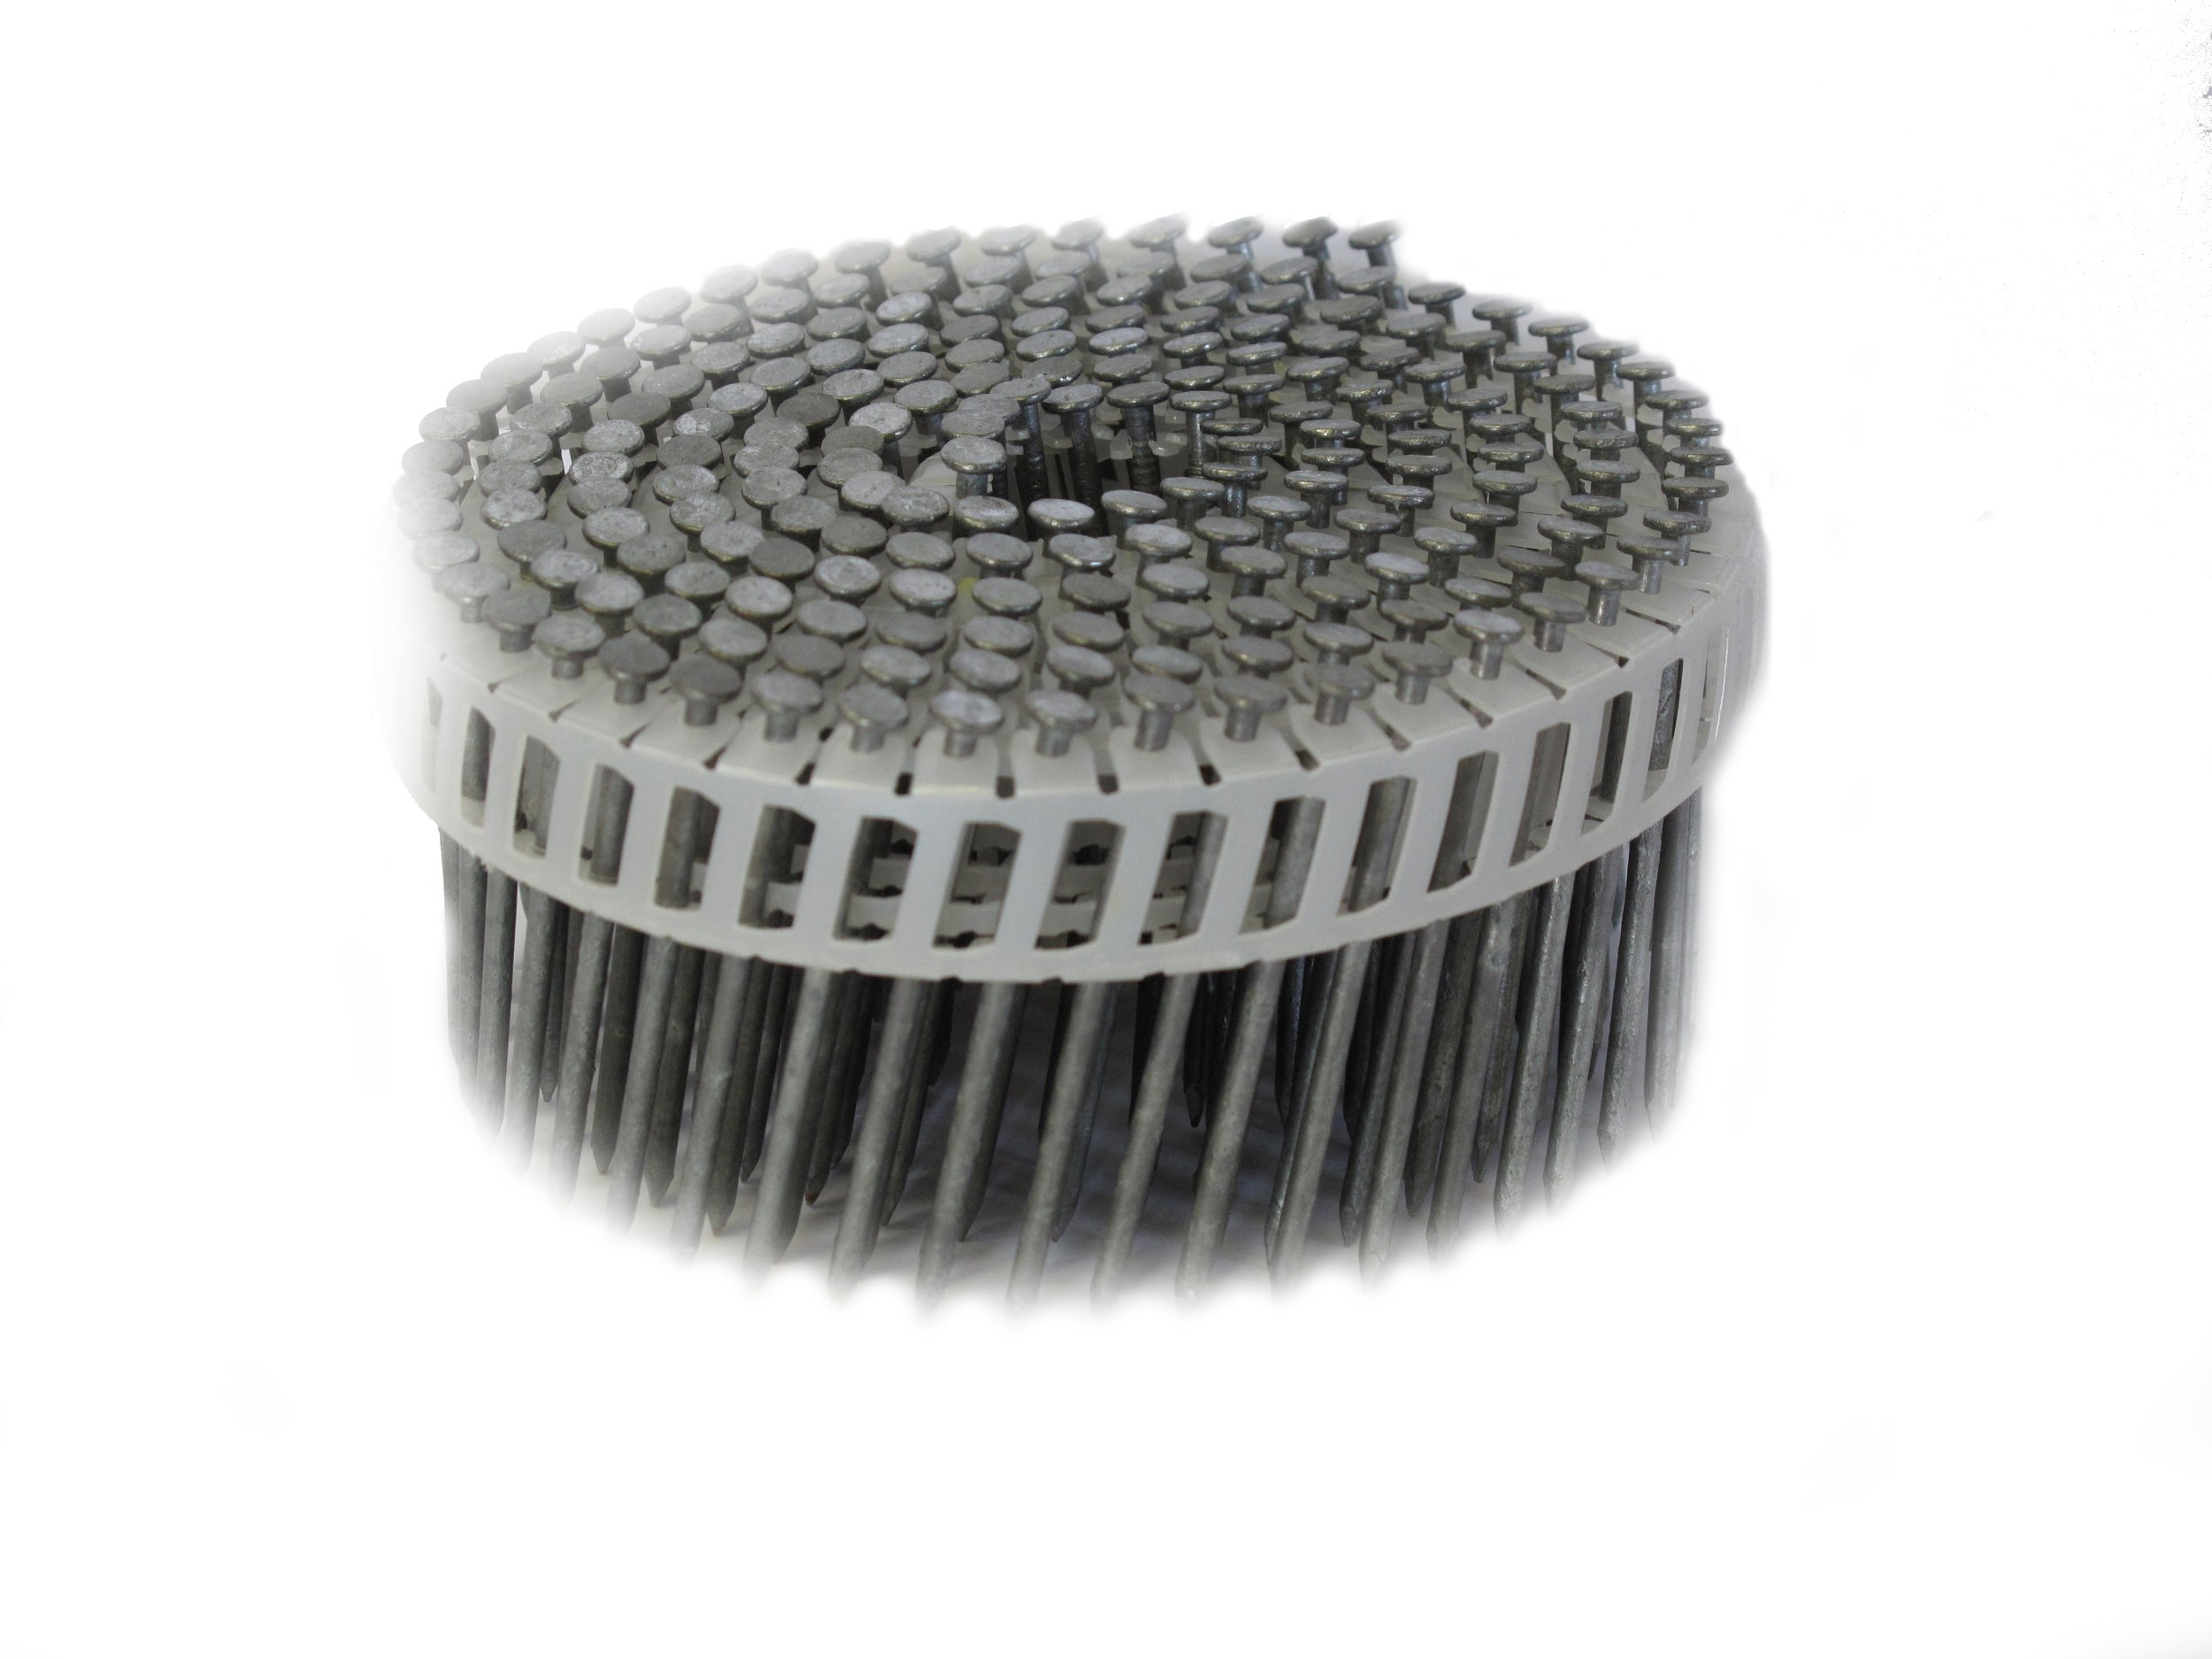 Anchor 212x092BPHD 2-1/2-Inch by 0.092 Plastic Coil 15 Degree Smooth Shank Hot Dipped Galvenized Siding Nails 4,800/Box